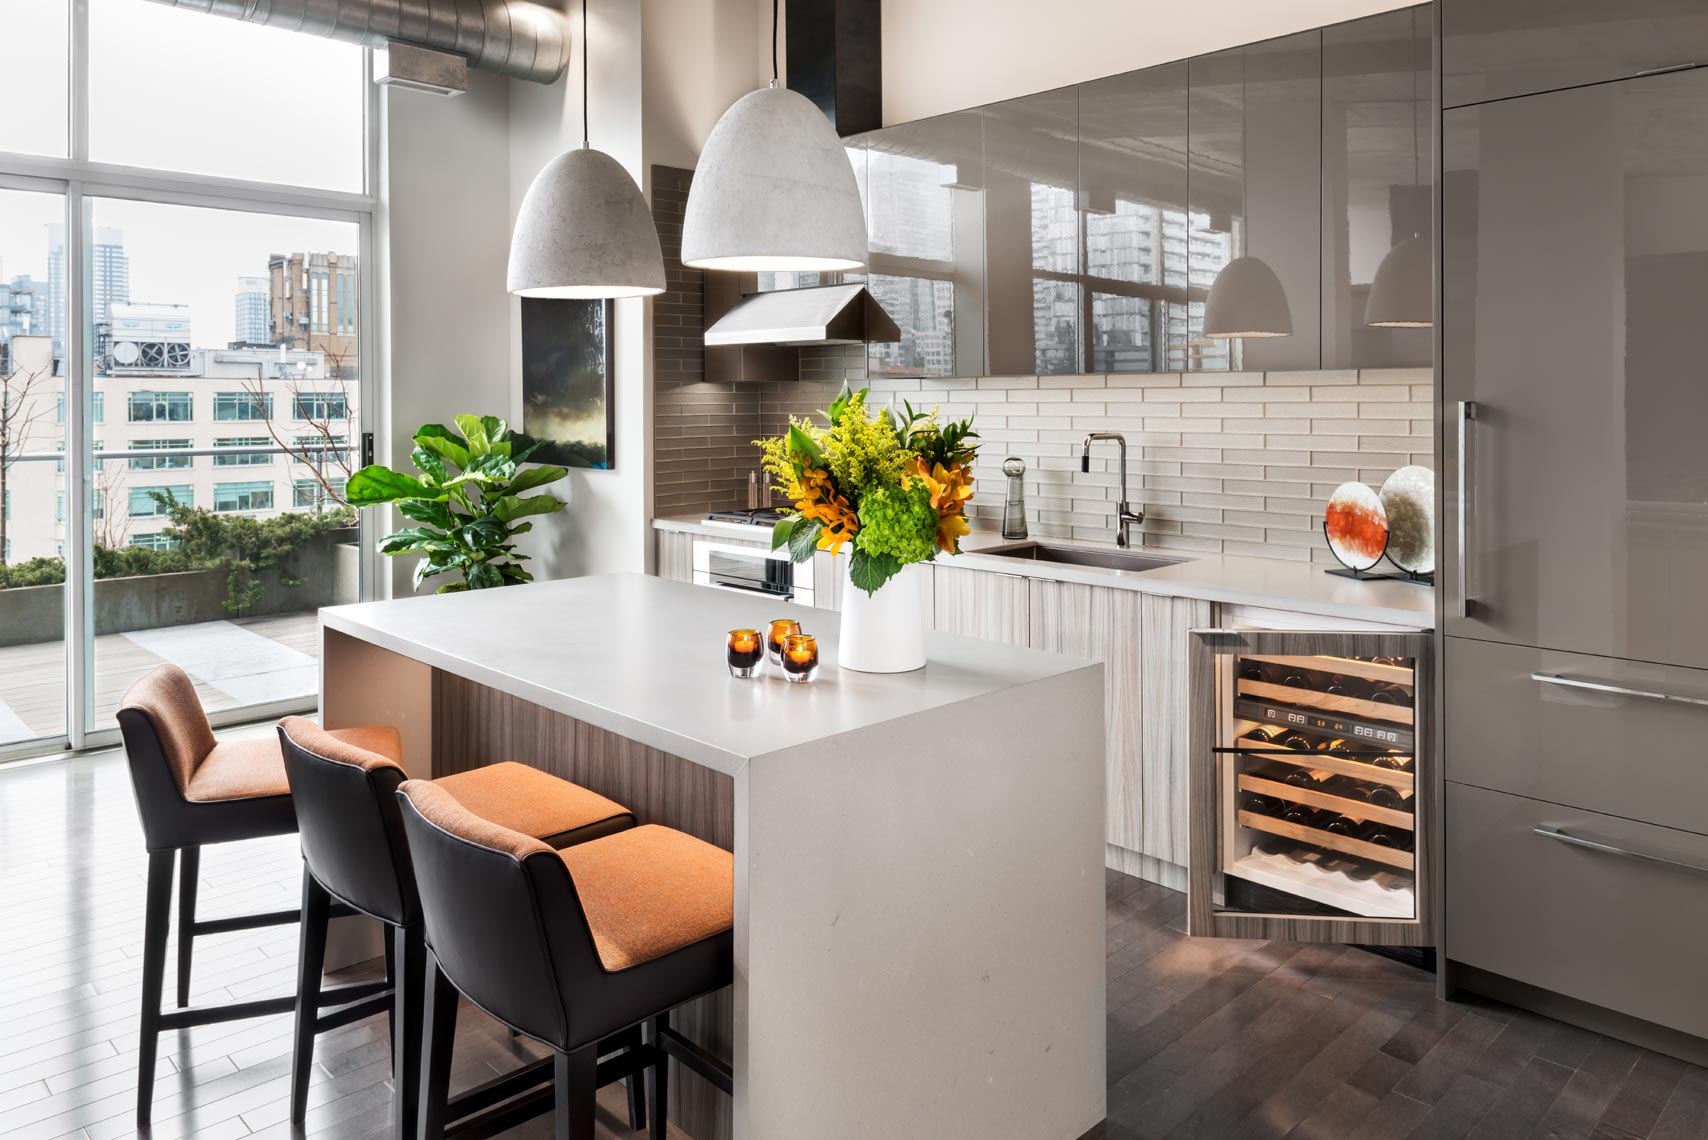 Penthouse Kitchen - Sheree Stuart Design